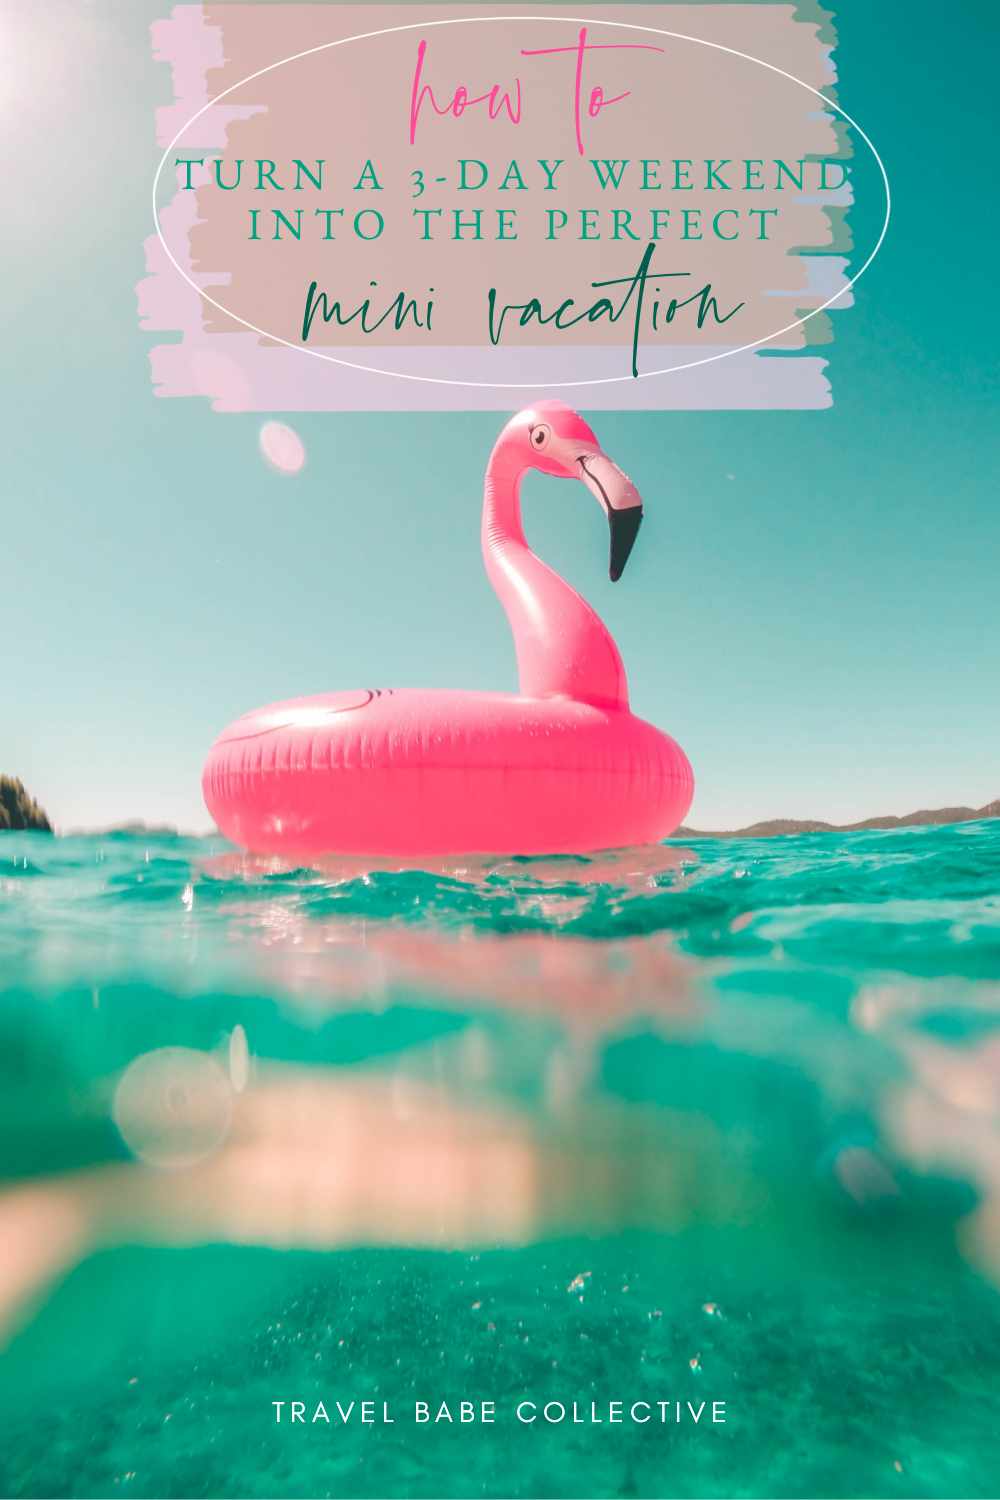 Turn a 3-Day Weekend into the Perfect Vacation - Blog